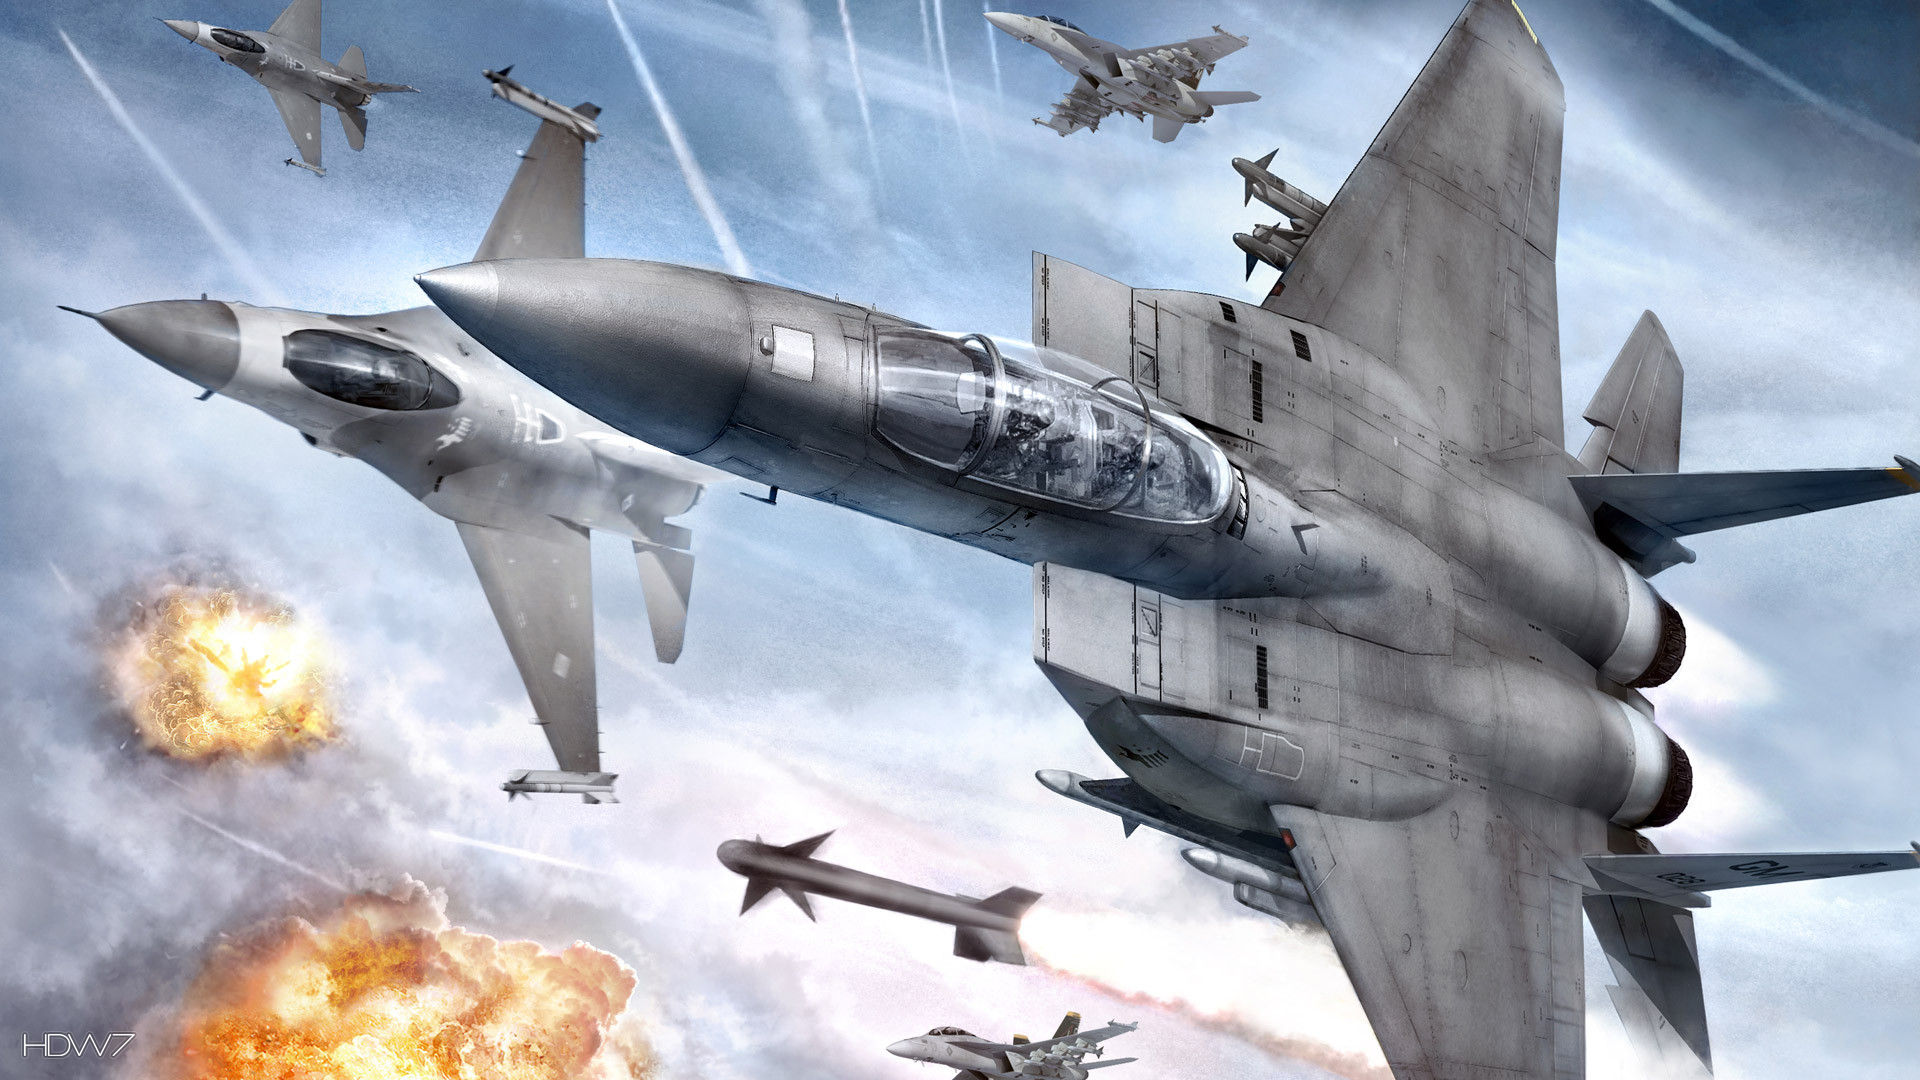 Ace Combat 6 Fires Of Liberation Game Planes War Explosion